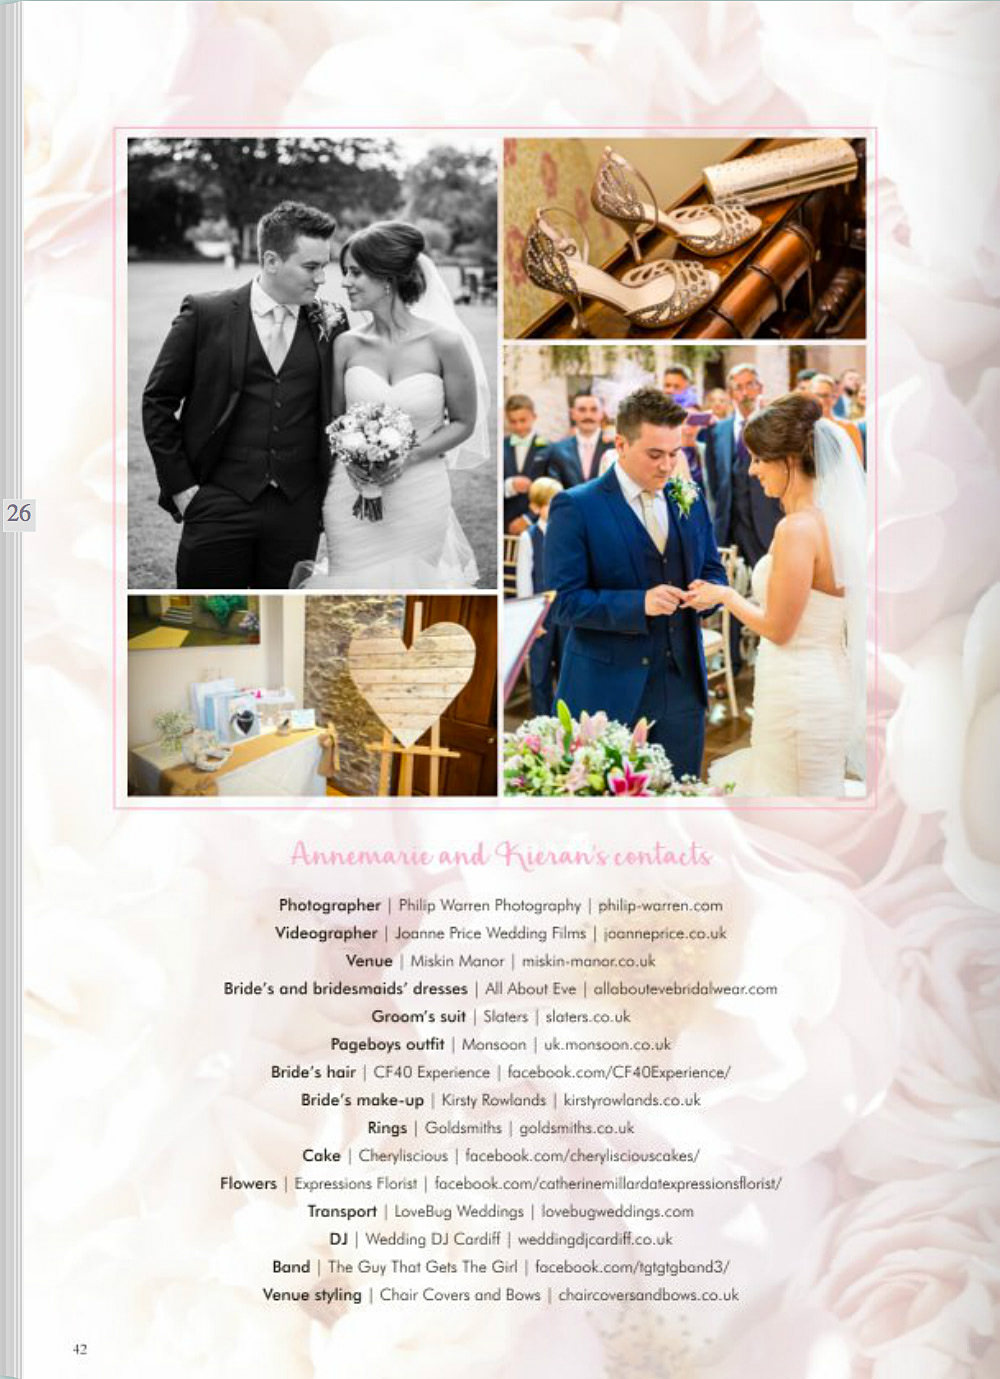 Your-south-wales-wedding-magazine-feature-2.jpg